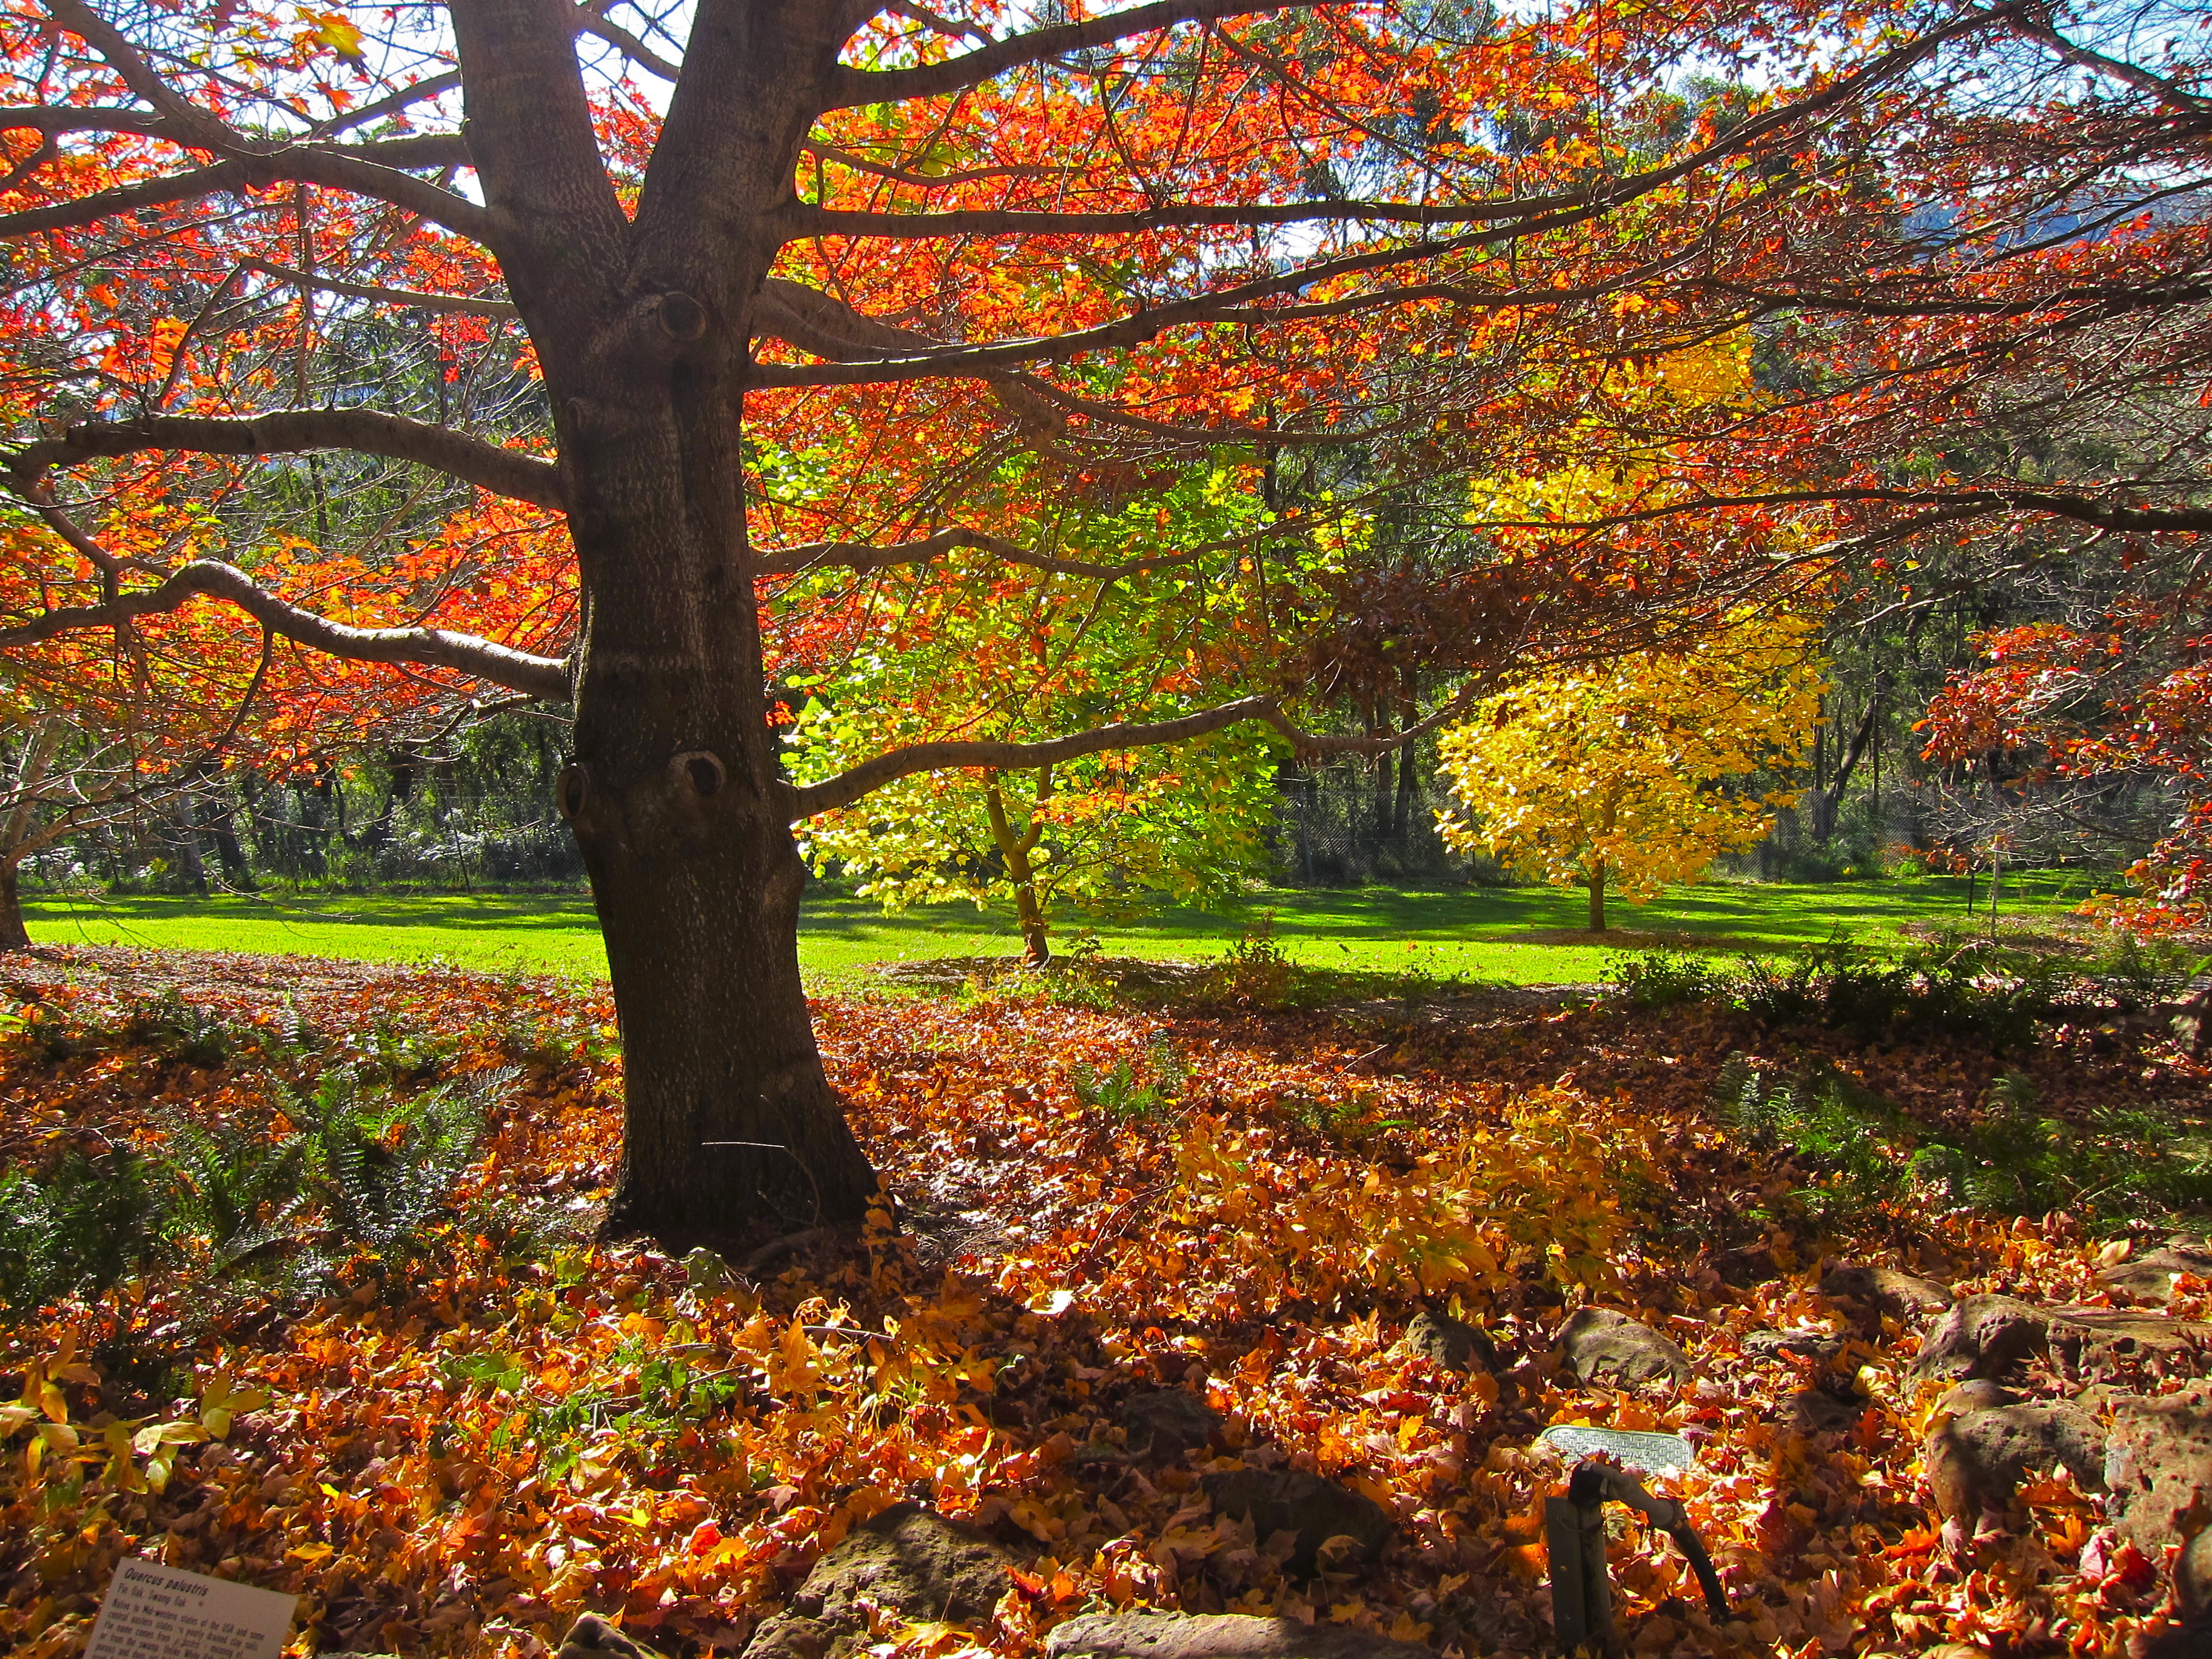 Garden Design With Where To See The Best Autumn Tree Displays In Blue Mountains